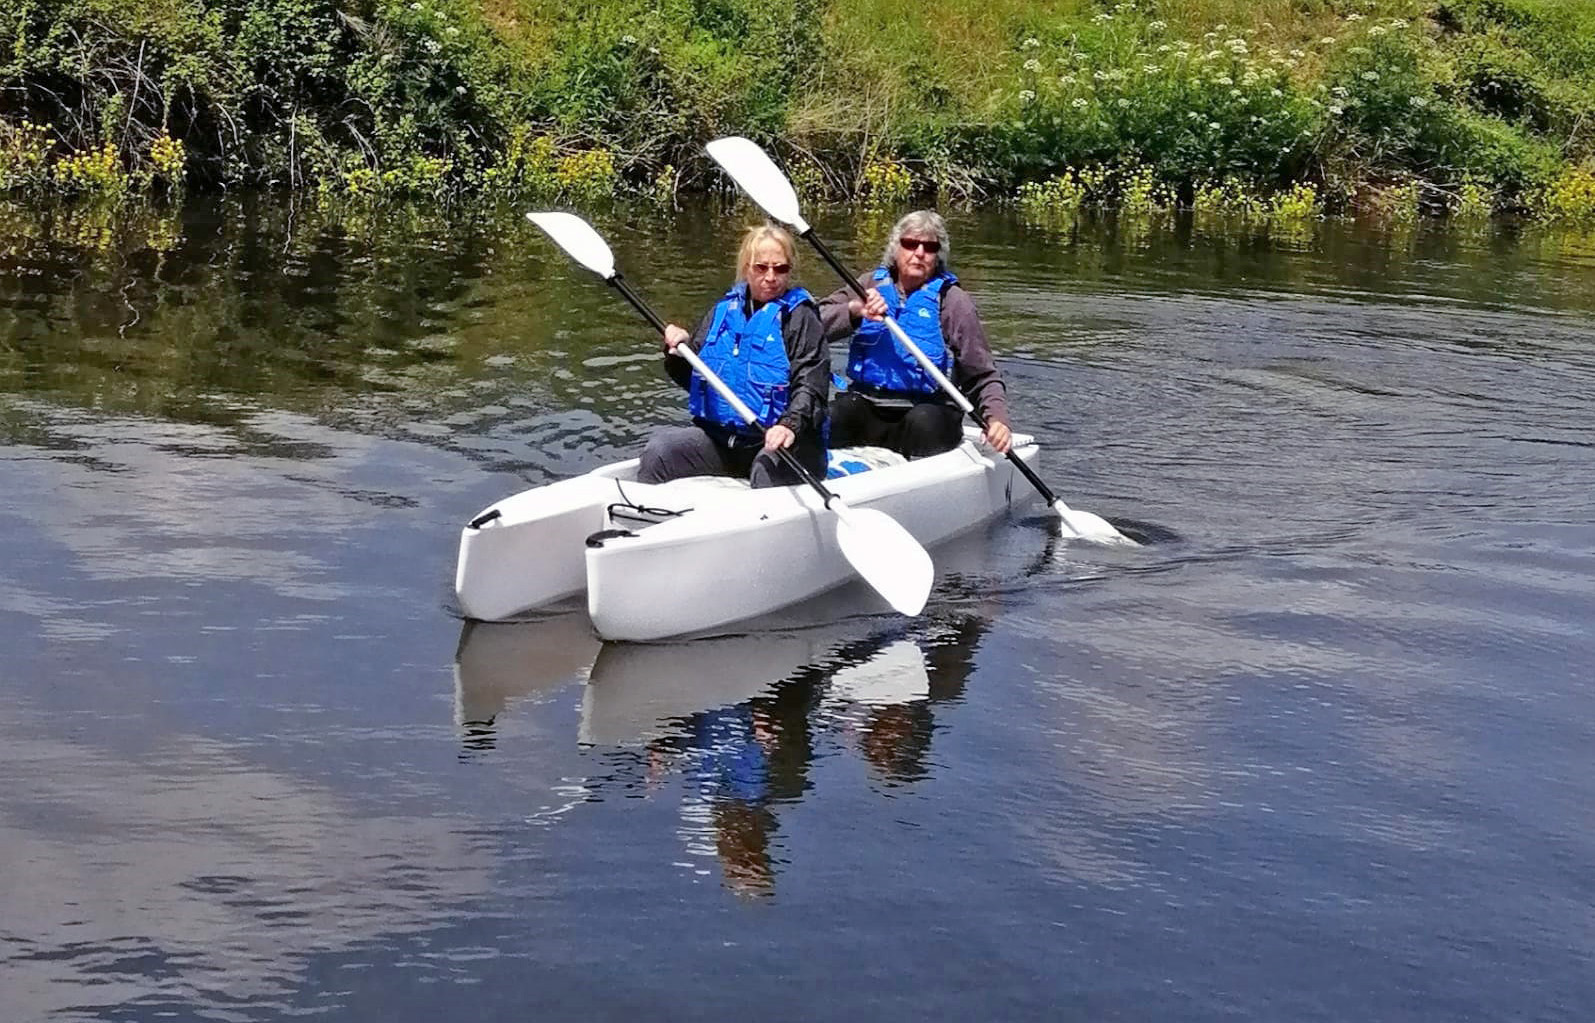 paddling our Wavewalk 700 tandem touring kayak